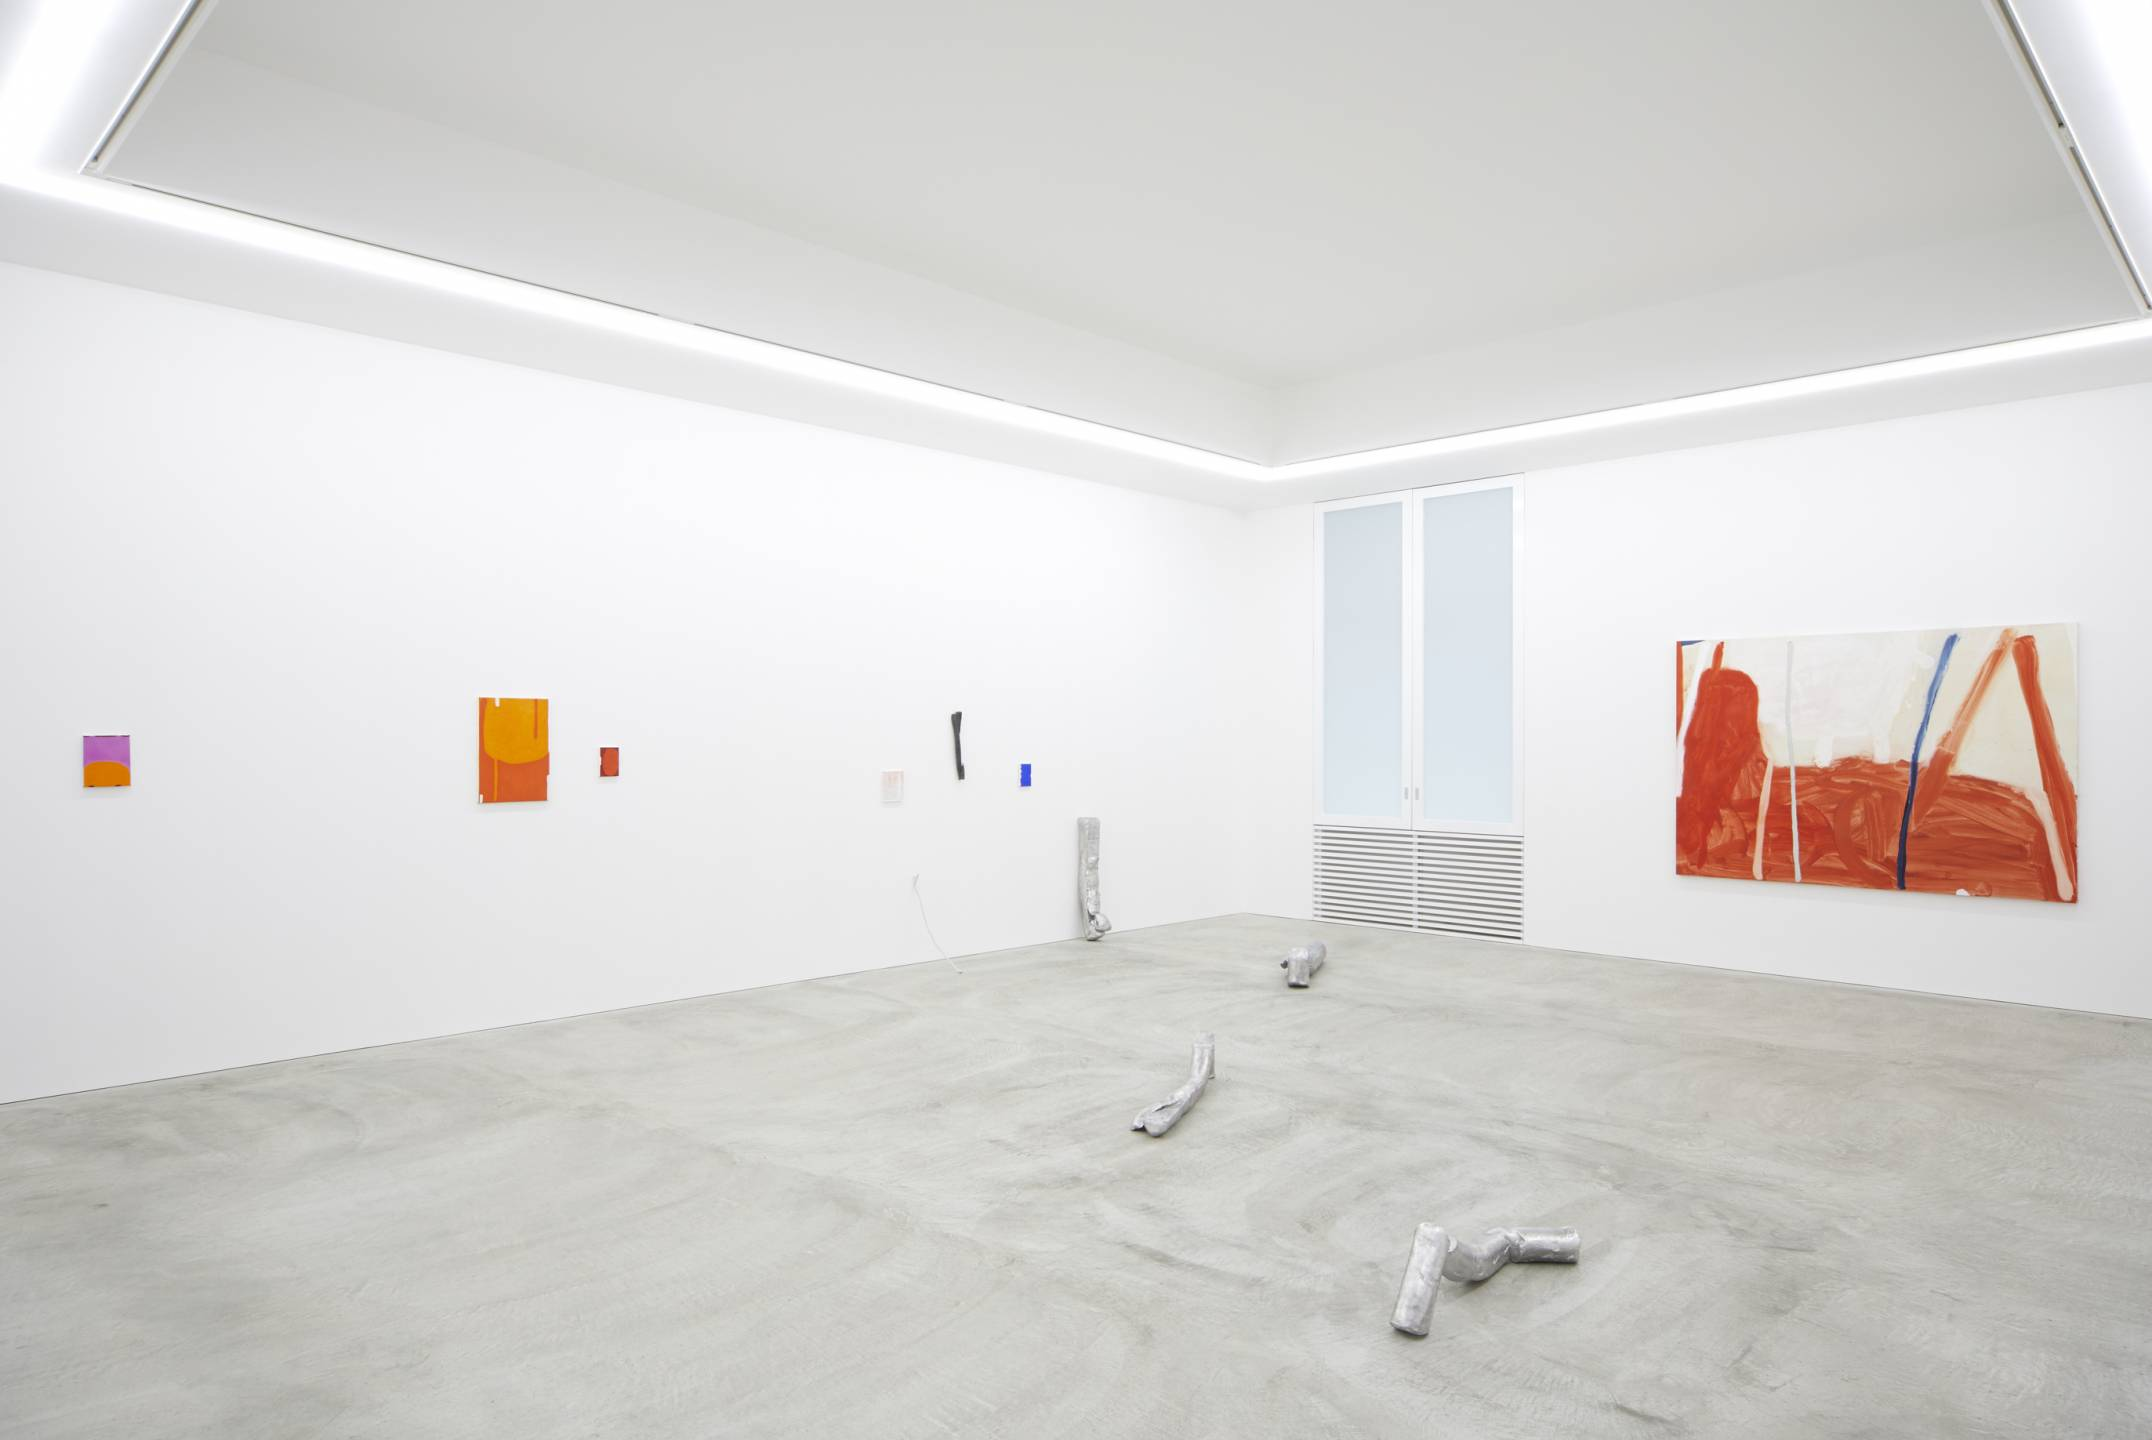 Paulo Monteiro, <em>The outside of distance</em>, 2017, MISAKO & ROSEN and Tomio Koyama Gallery, Tokyo - Mendes Wood DM